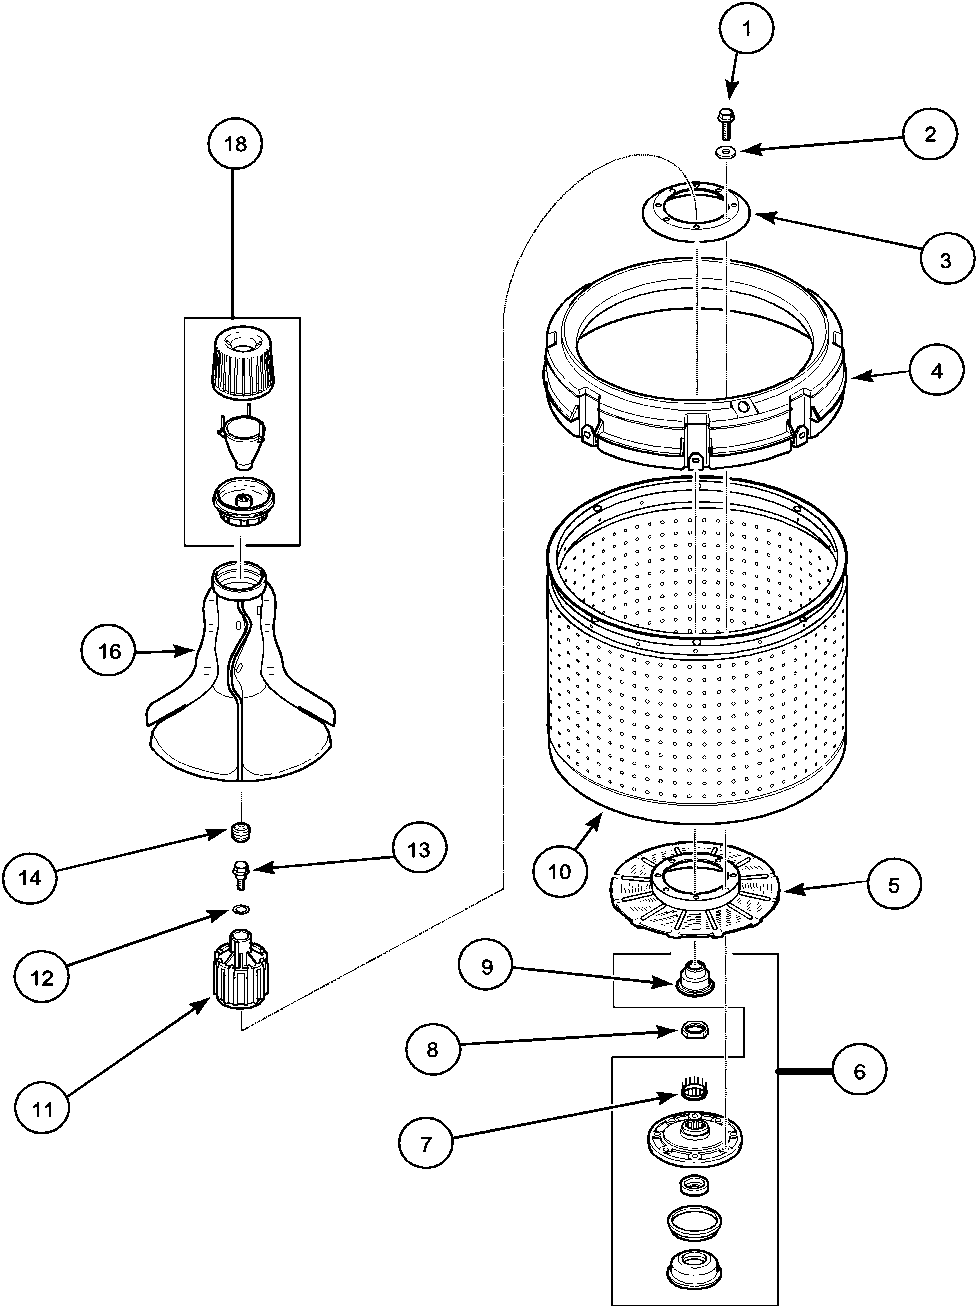 medium resolution of lwa40aw2 top loading washer agitator drive bell and wash tub parts diagram